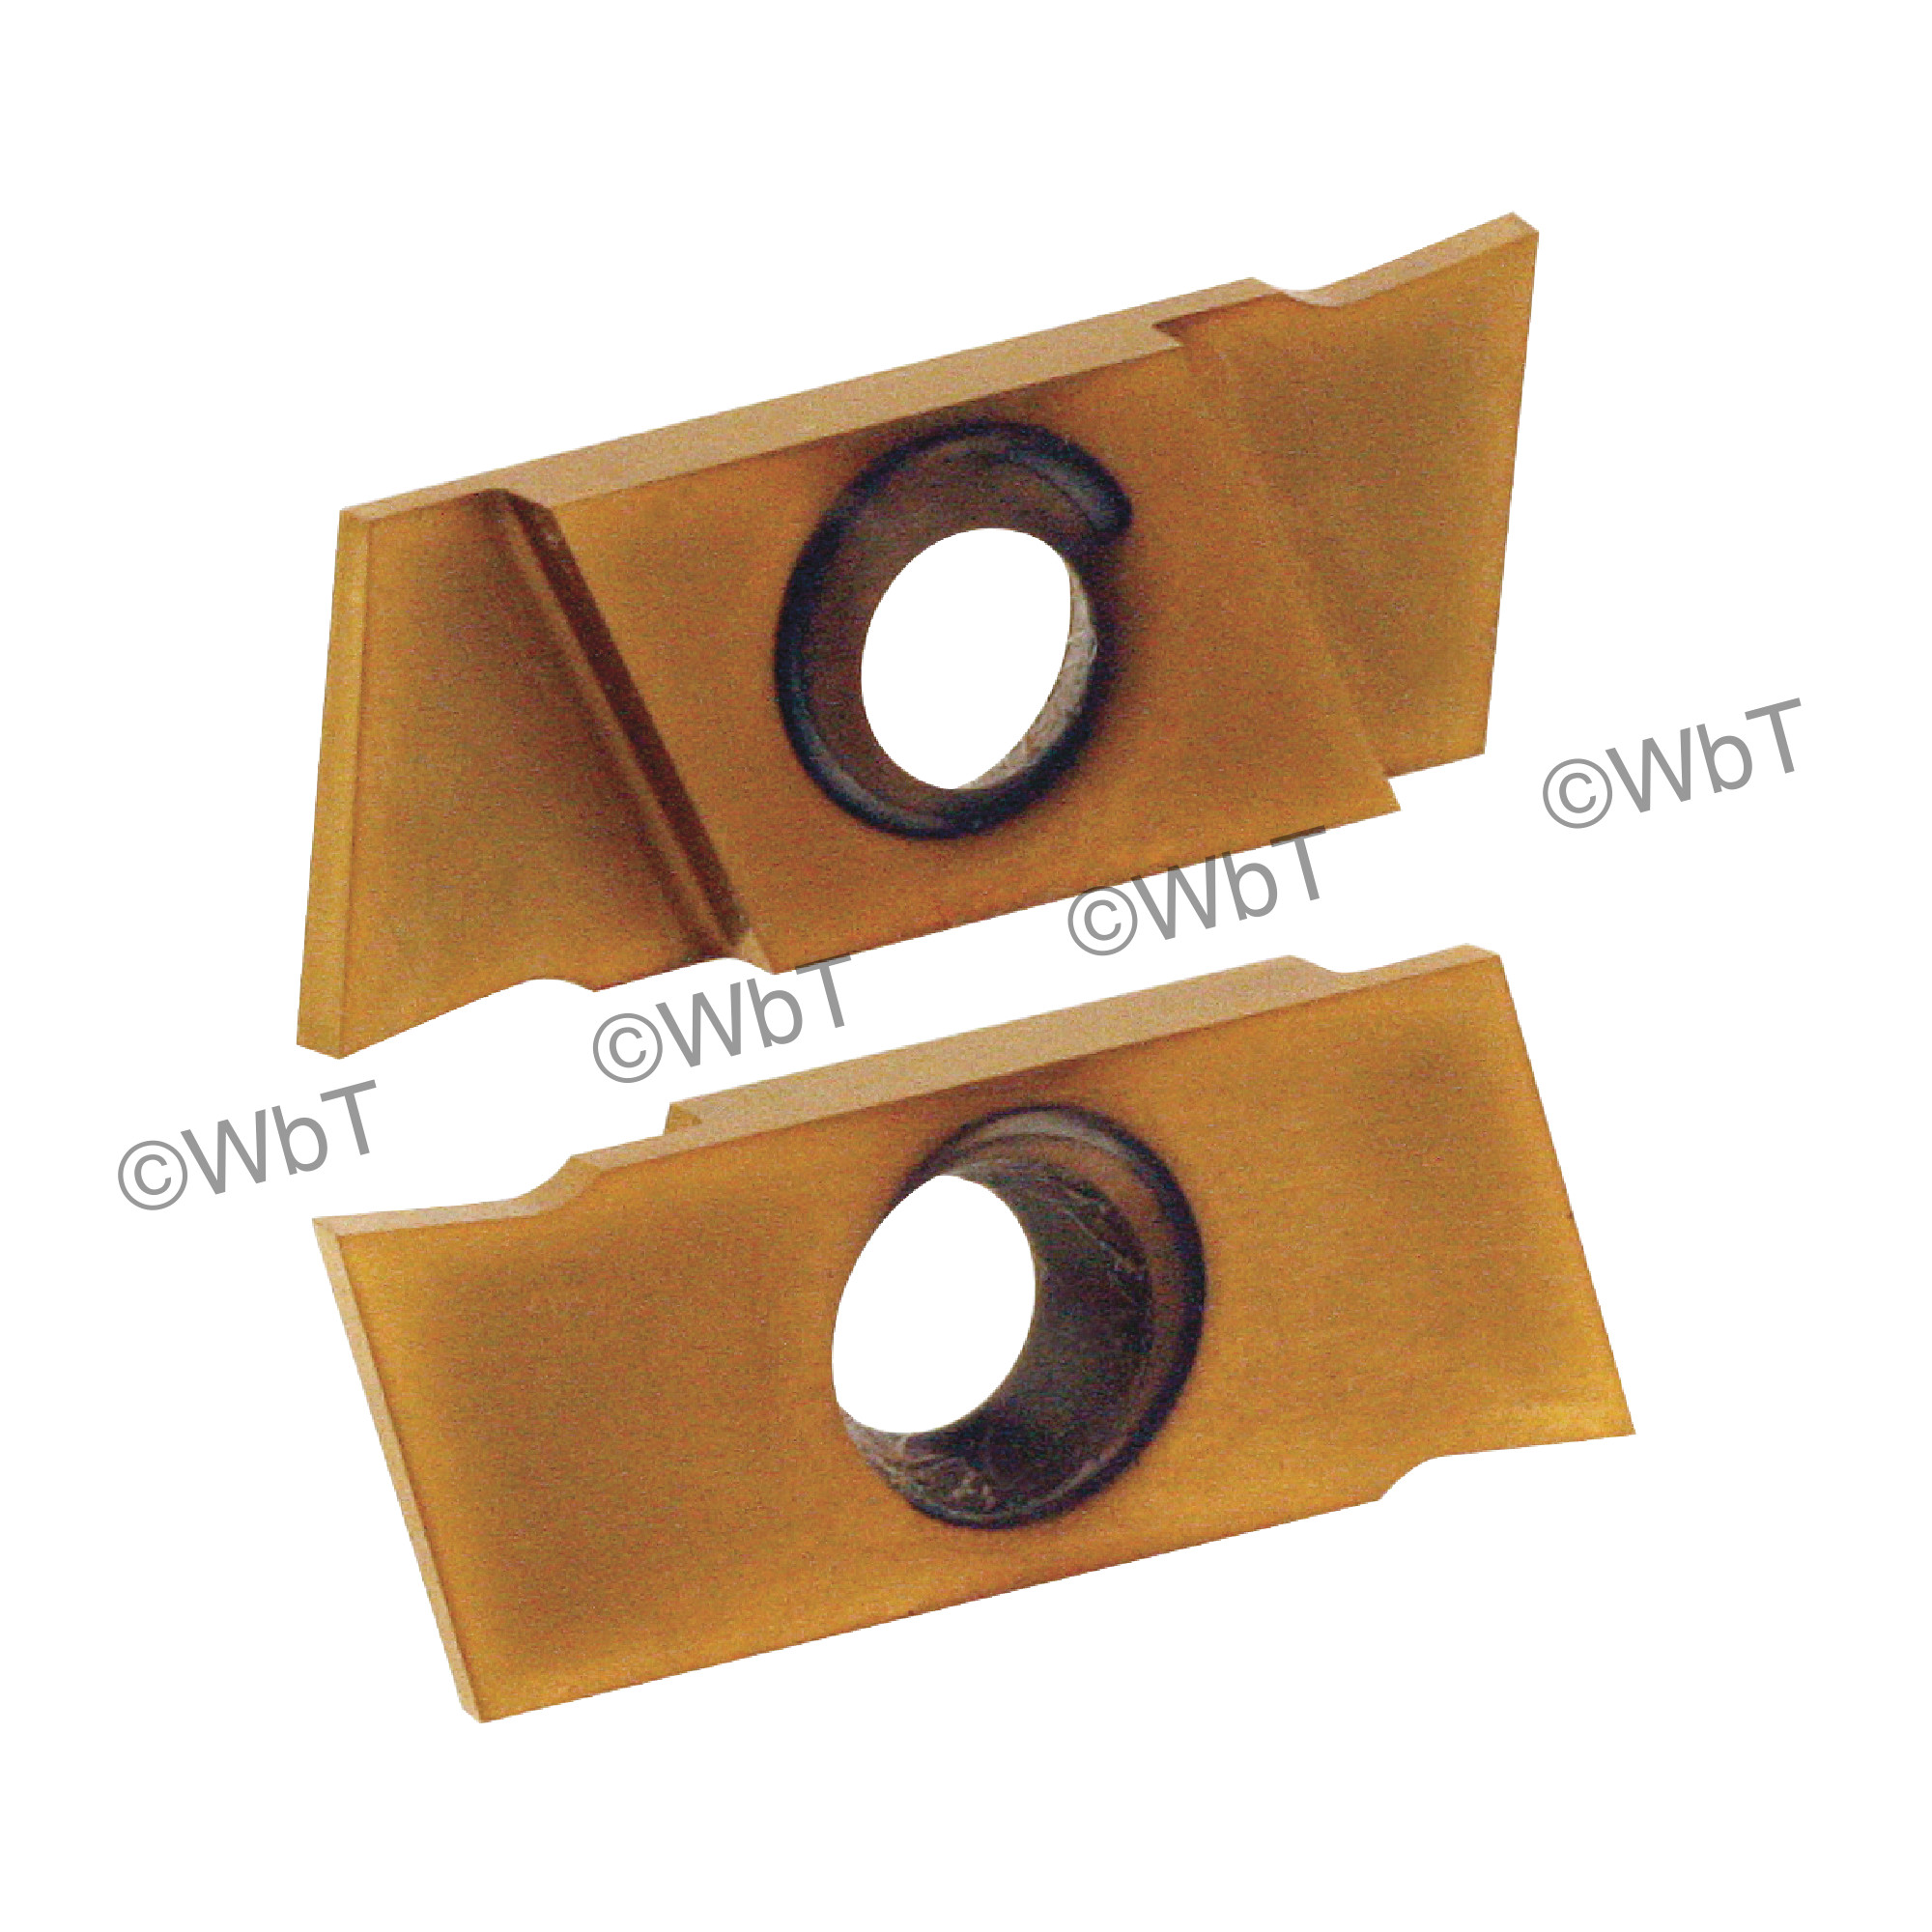 """NIKCOLE - GIE-7-GP-1.0RL C6-PV / Indexable Carbide Insert for Grooving & Parting / 0.039"""" Cutting Width / Right Hand"""